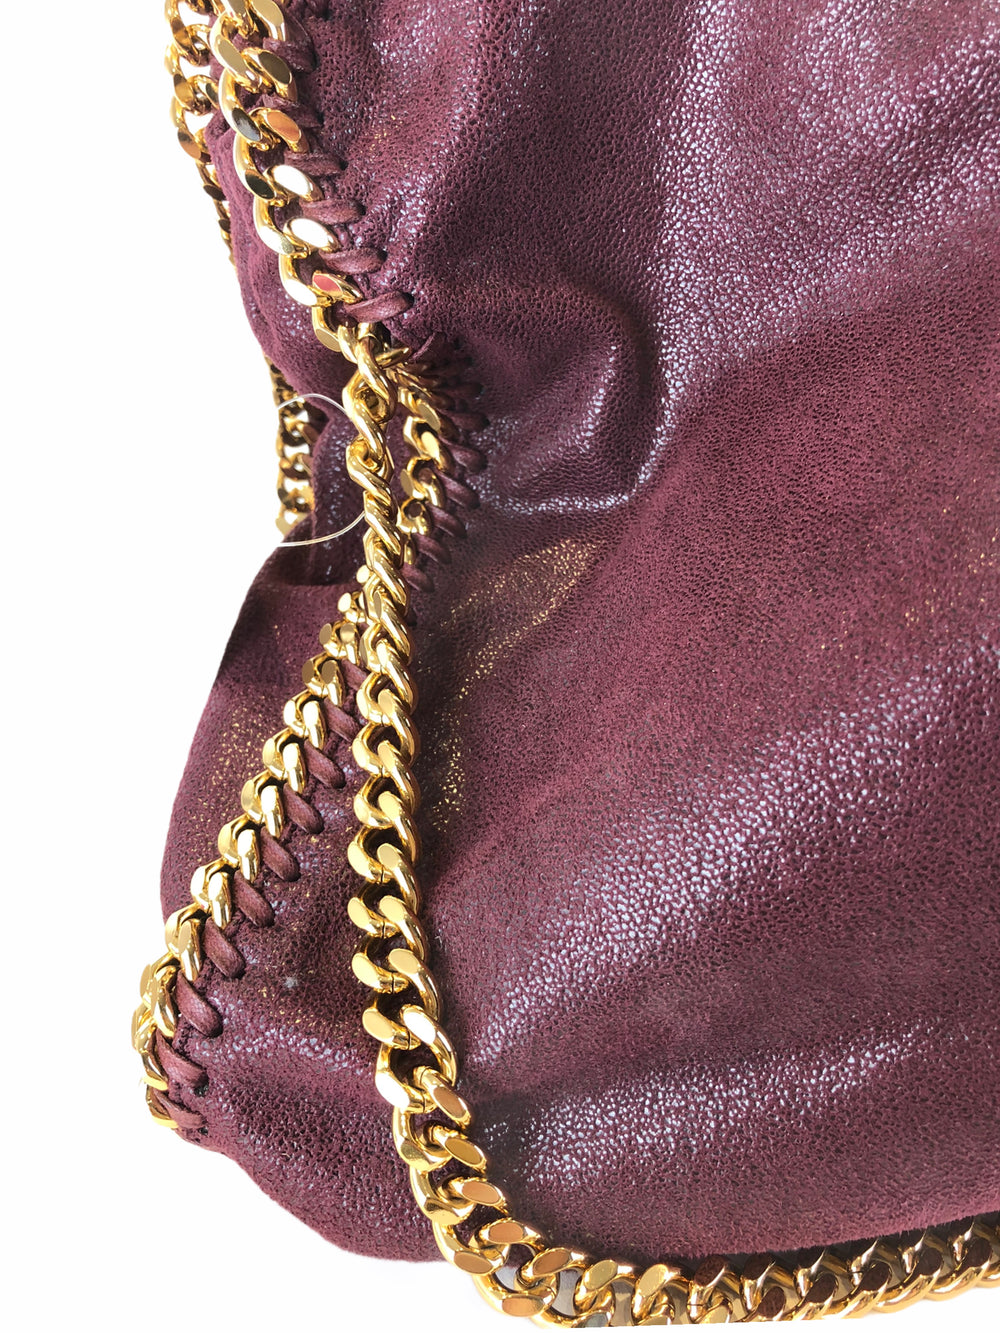 Stella McCartney Burgundy Handbag  - As Seen on Instagram 27/09/2020